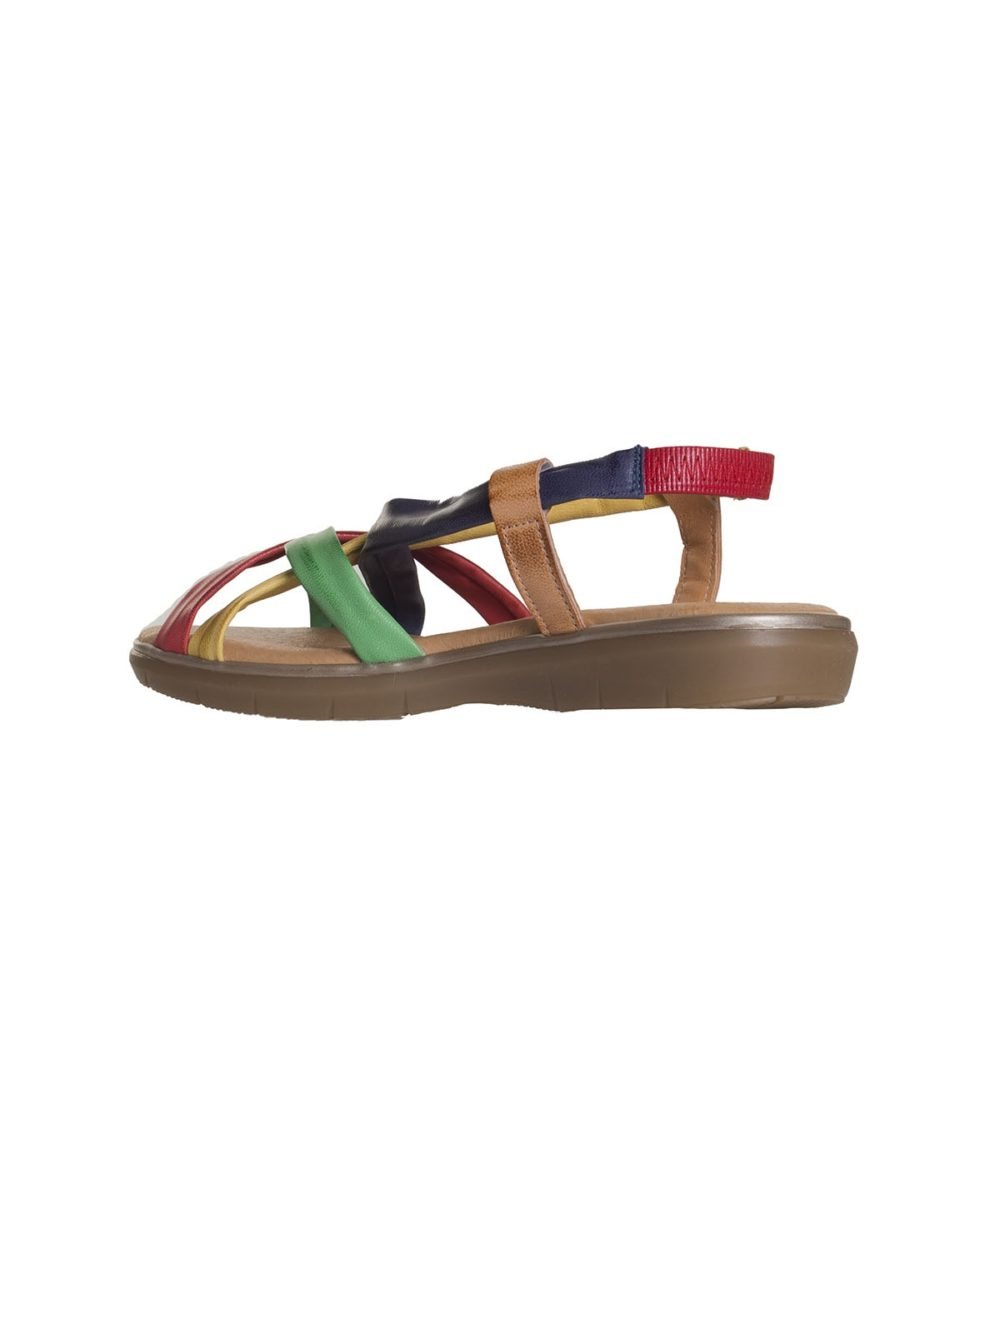 Emy Cara Platino Sandal Marila Shoes Katie Kerr Women's Shoes